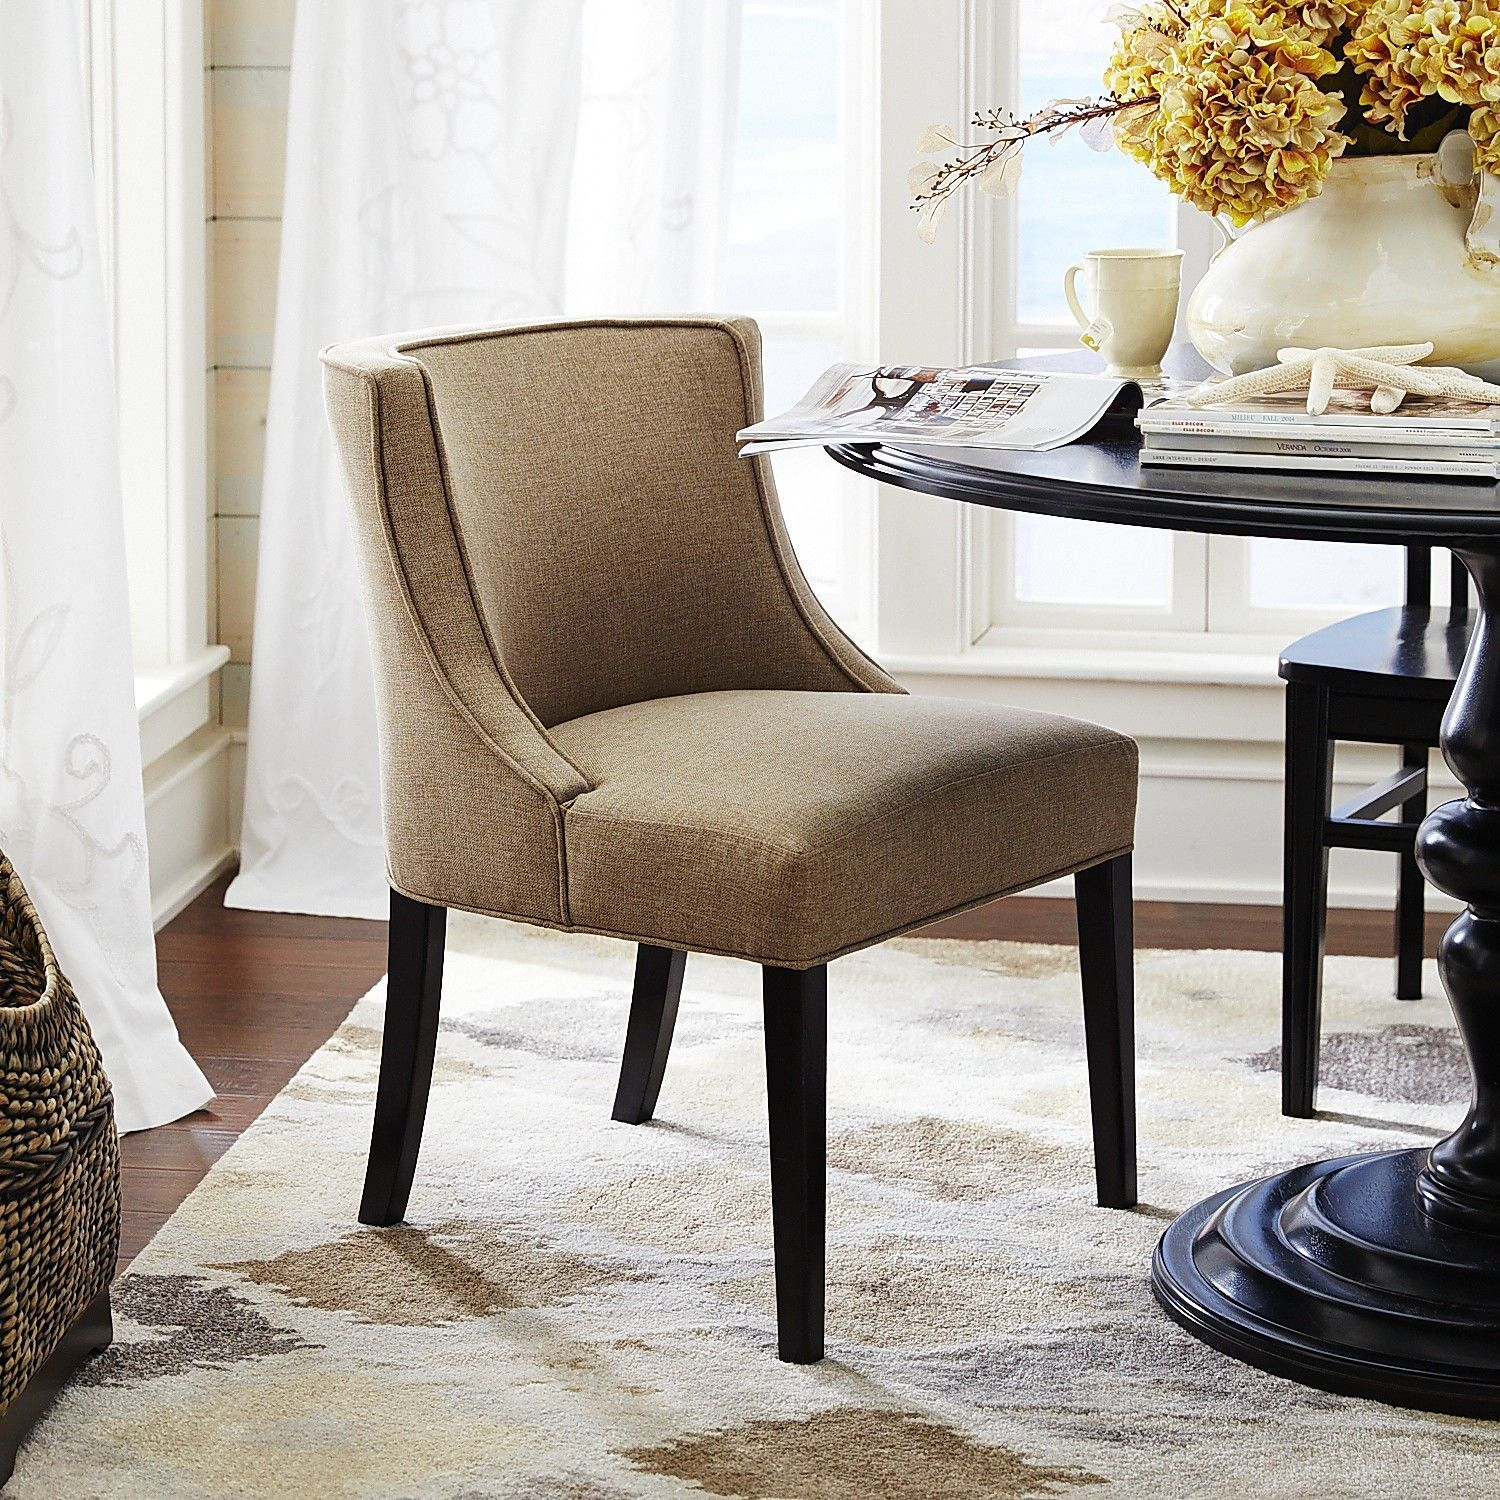 Eva Heather Dining Chair with Espresso Wood | Dining, Espresso and ...